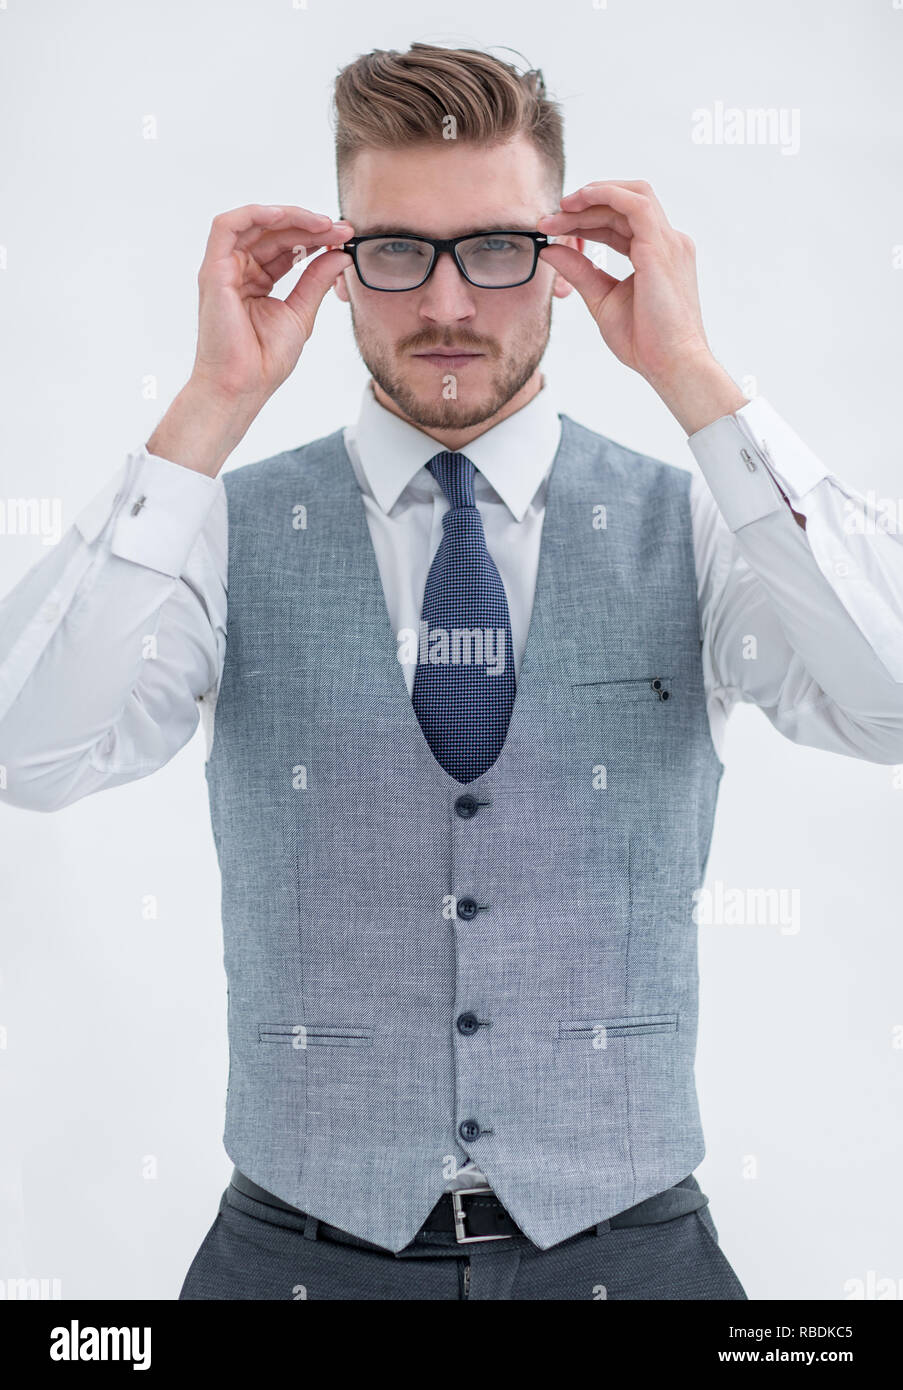 close-up of a businessman in a vest wearing glasses - Stock Image